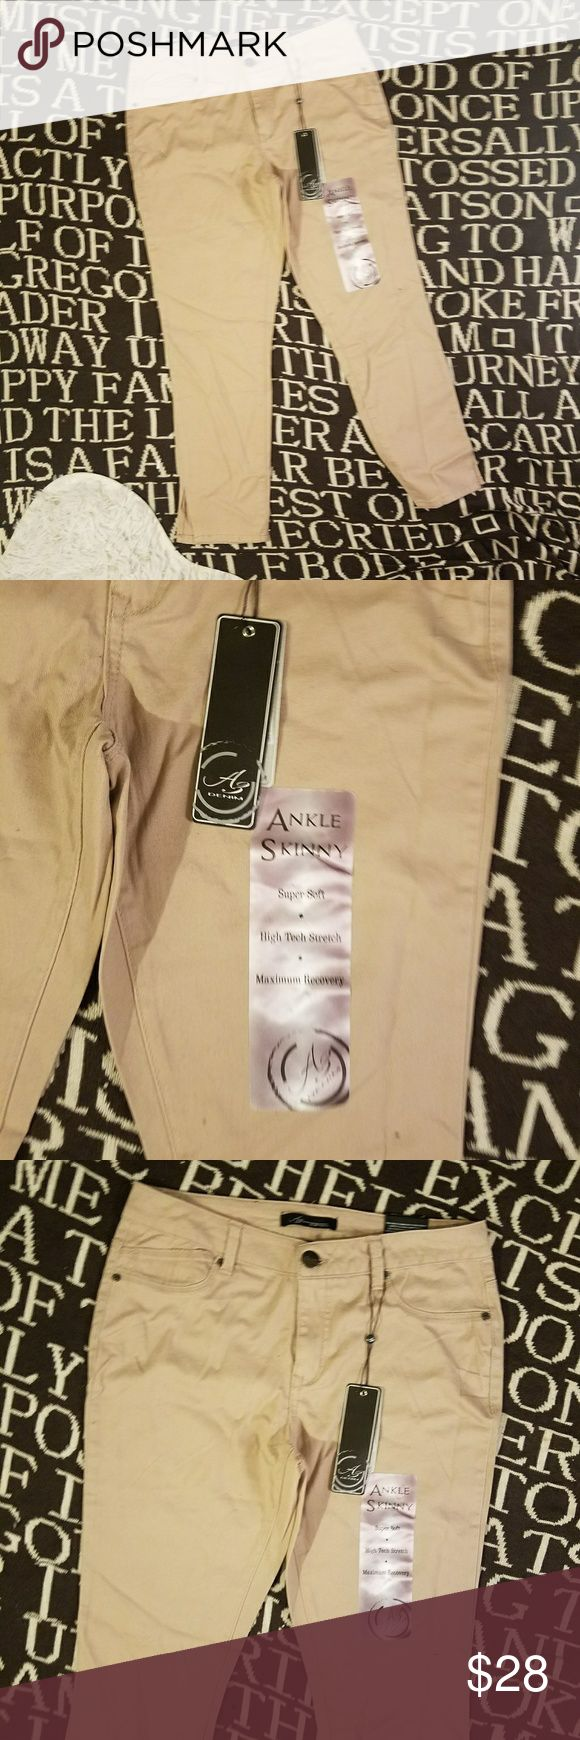 Az denim skinny ankle khaki cream jeans 10 soft Brand new with tags size 10 cream khaki color skinny cropped ankle jeans with front and back pockets and zipper fly these are super soft and they can stretch if you like it make me an offer through the button but no trades az denim Jeans Ankle & Cropped